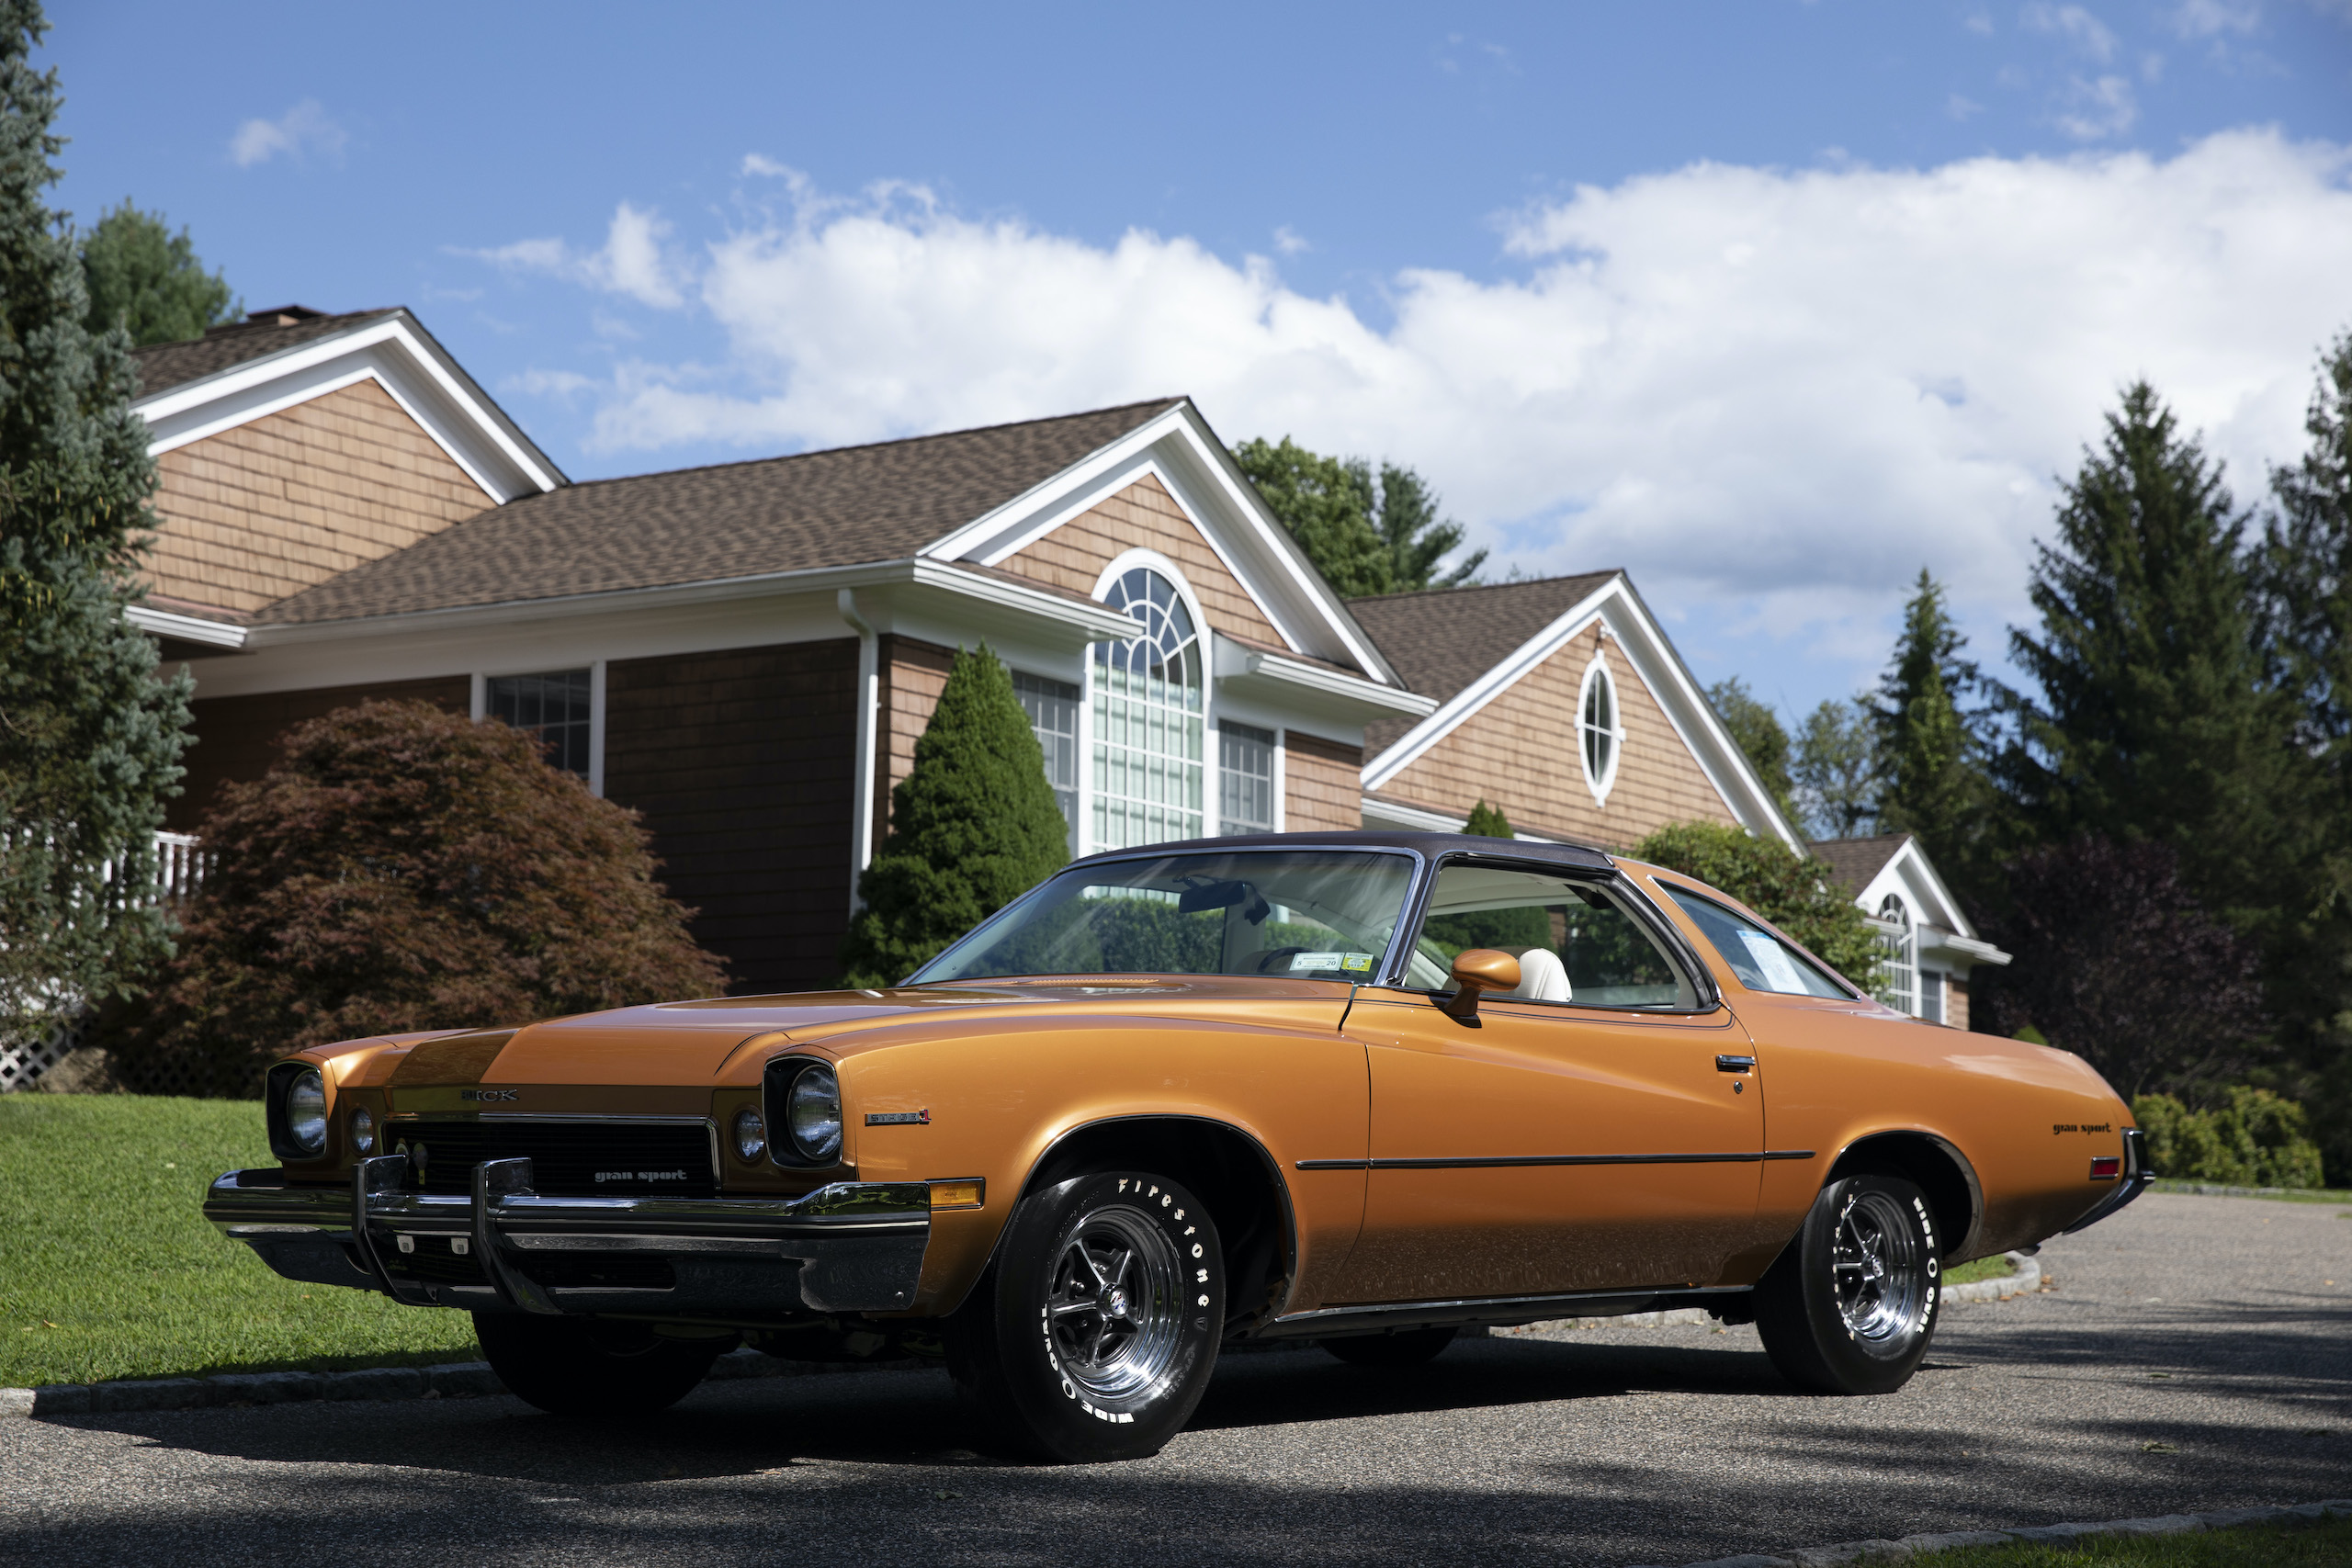 1973 Buick GS Stage 1 gran sport coupe front three-quarter